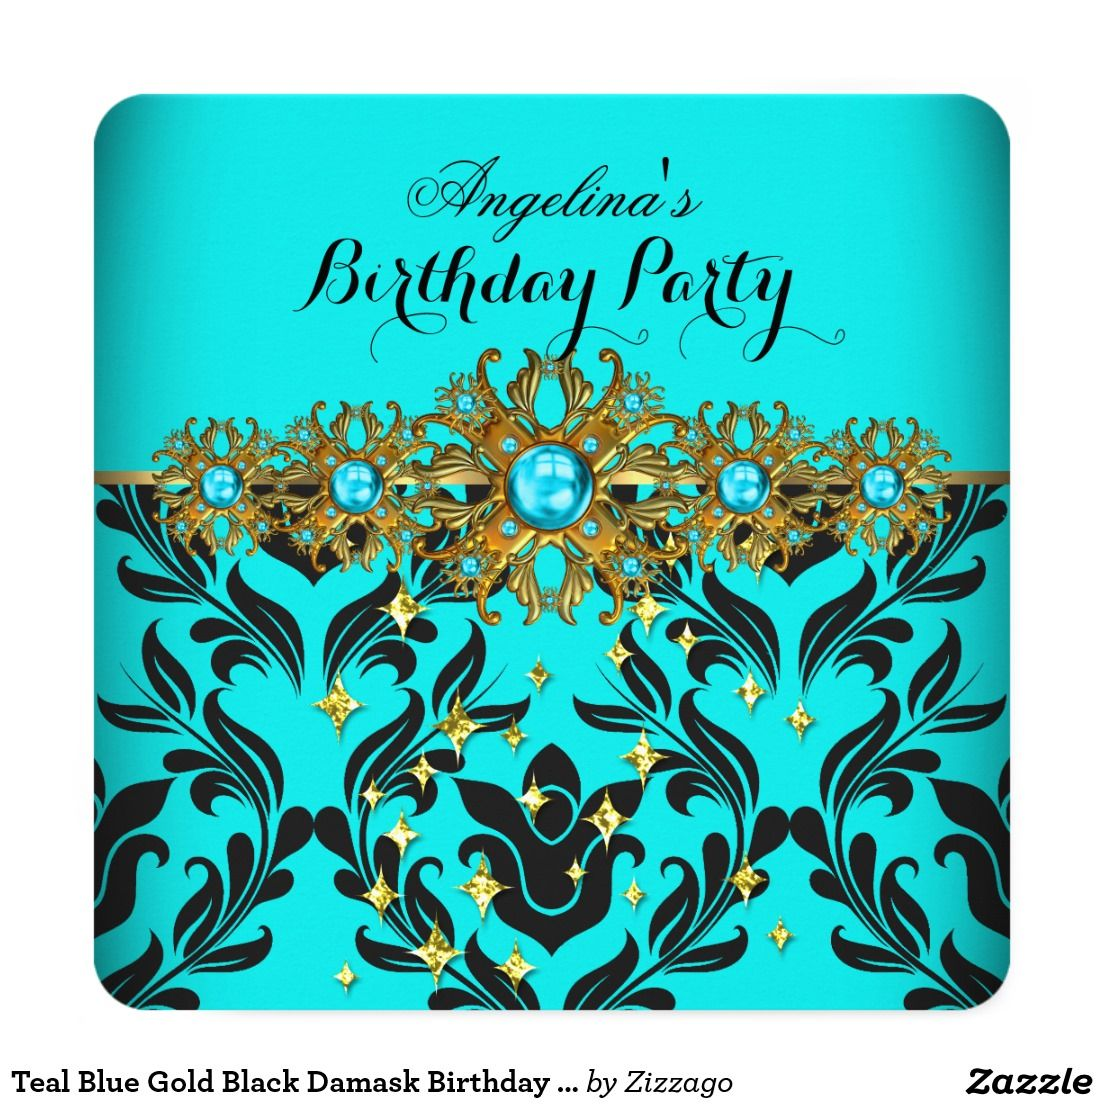 Teal Blue Gold Black Damask Birthday Party 3 5.25x5.25 Square Paper  Invitation Card | Adult birthday invitations, Birthday invitations, Gold  birthday